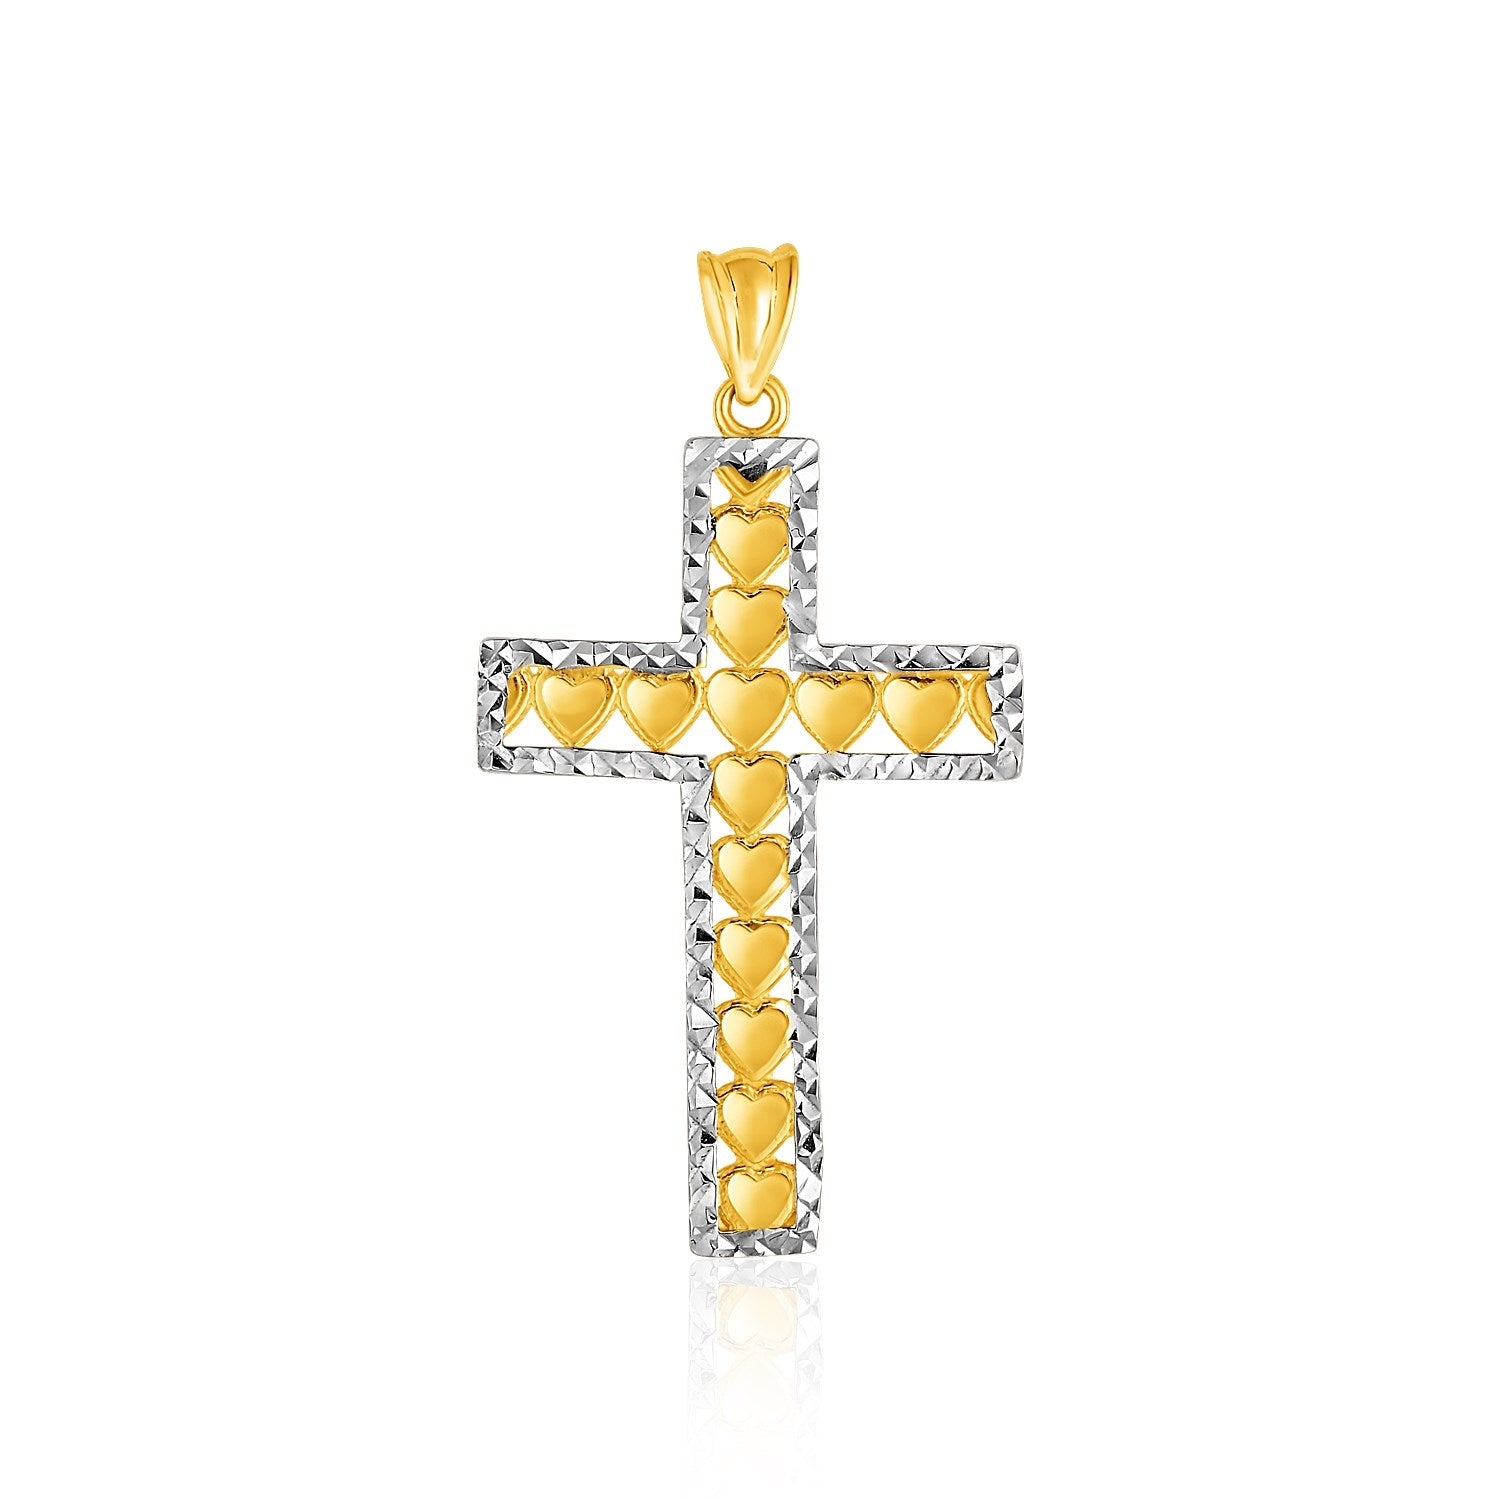 14K Two-Toned Yellow and White Gold Textured Cross Pendant with Hearts